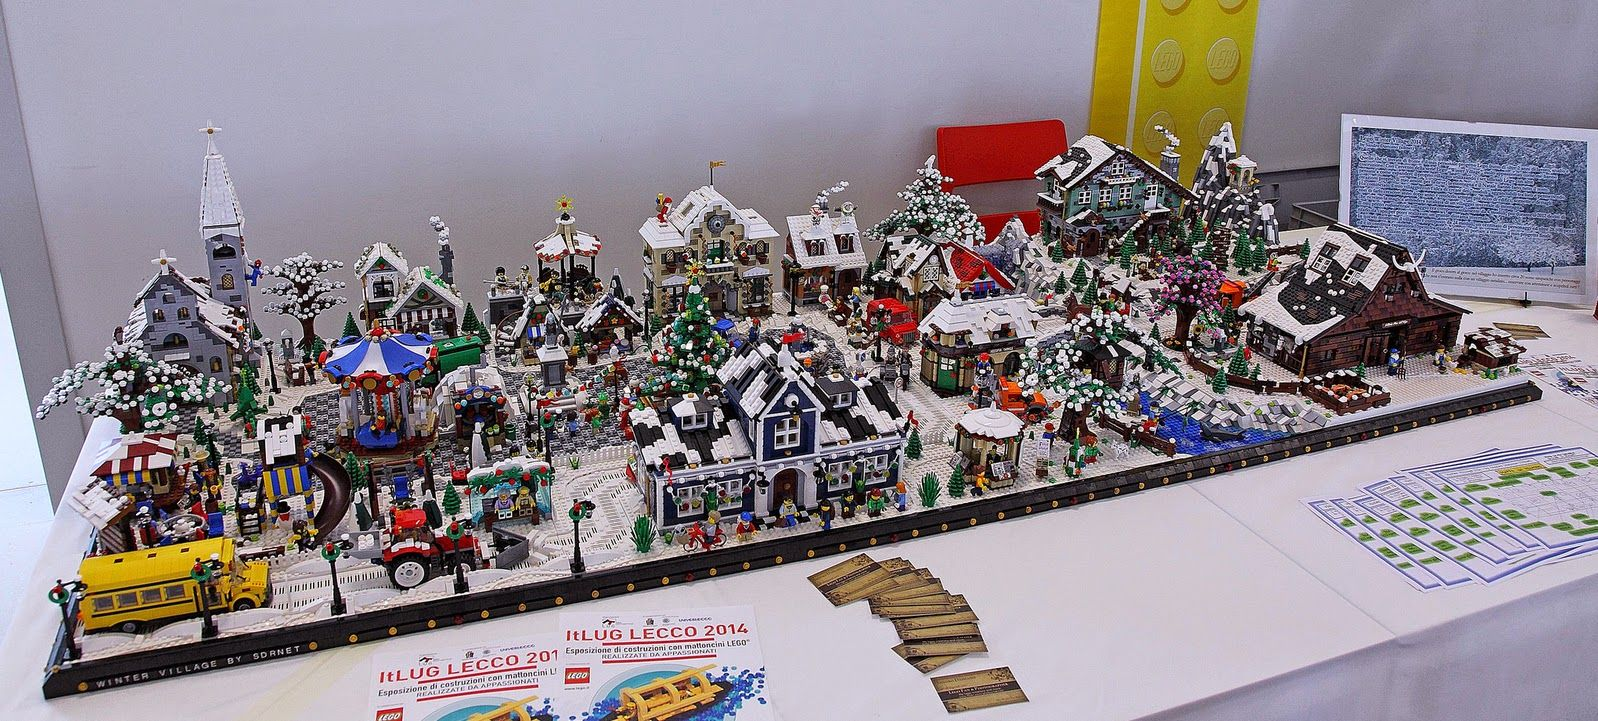 What the LEGO Winter Village sets look like together | Great LEGO ...